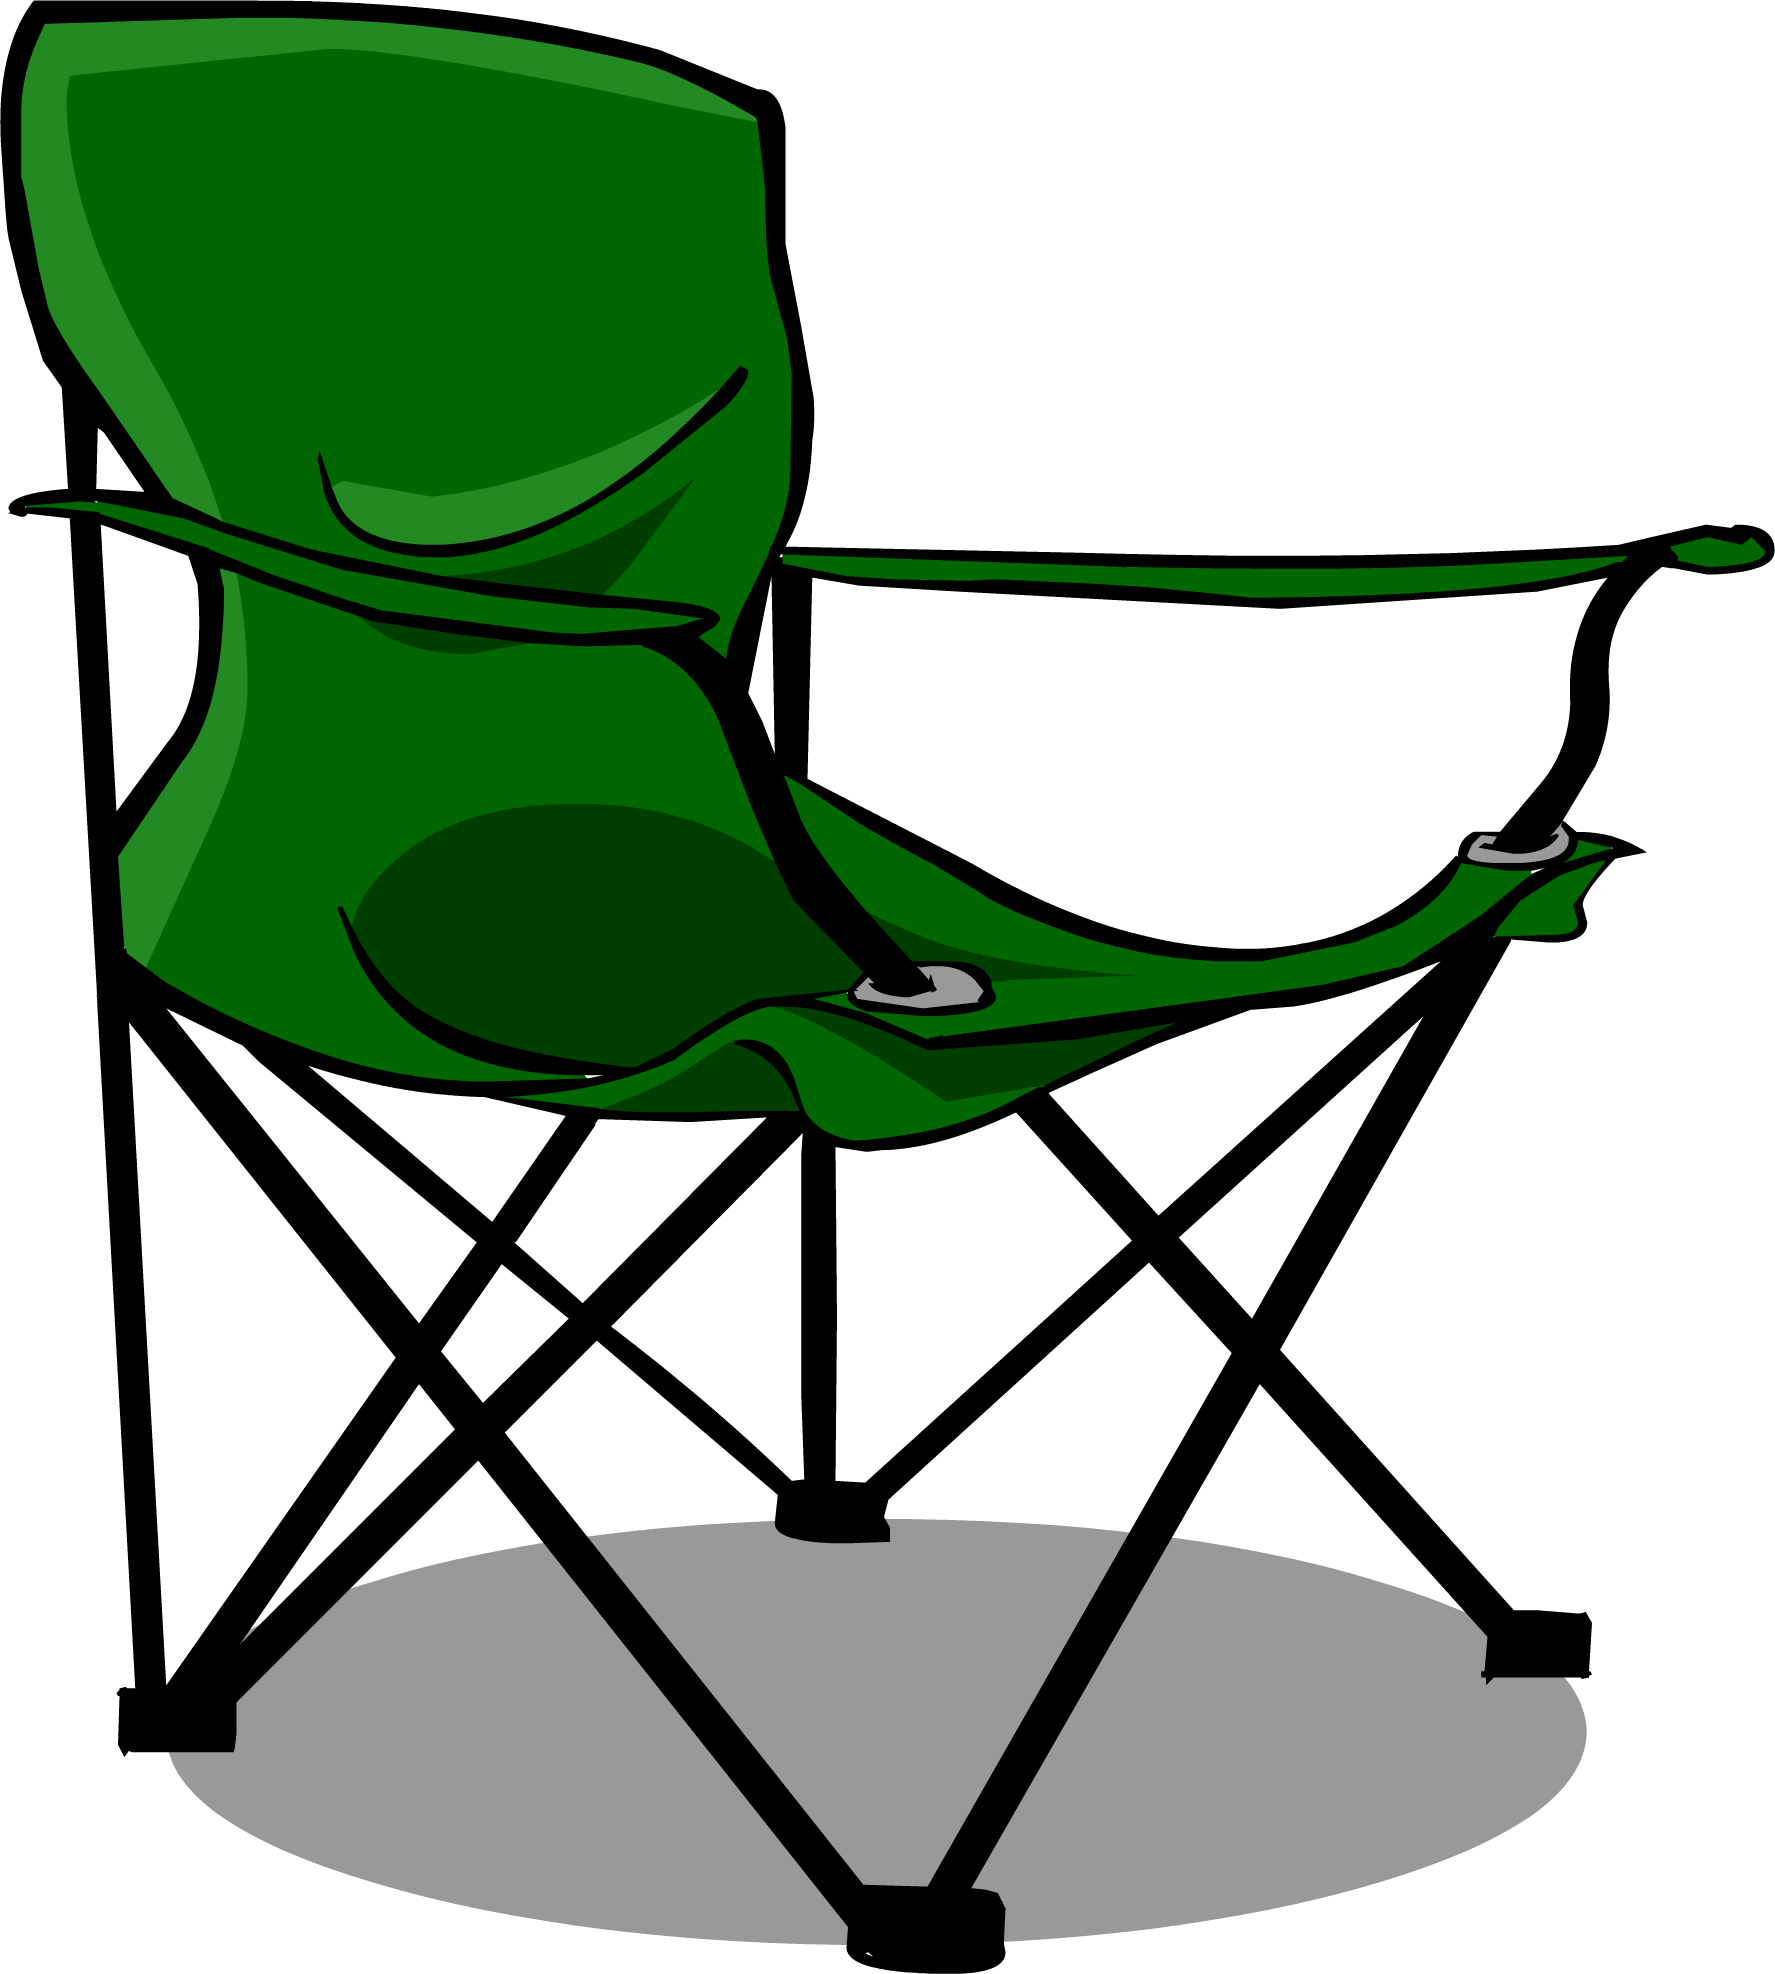 image camping chair sprite 002 png club penguin wiki fandom rh clubpenguin wikia com